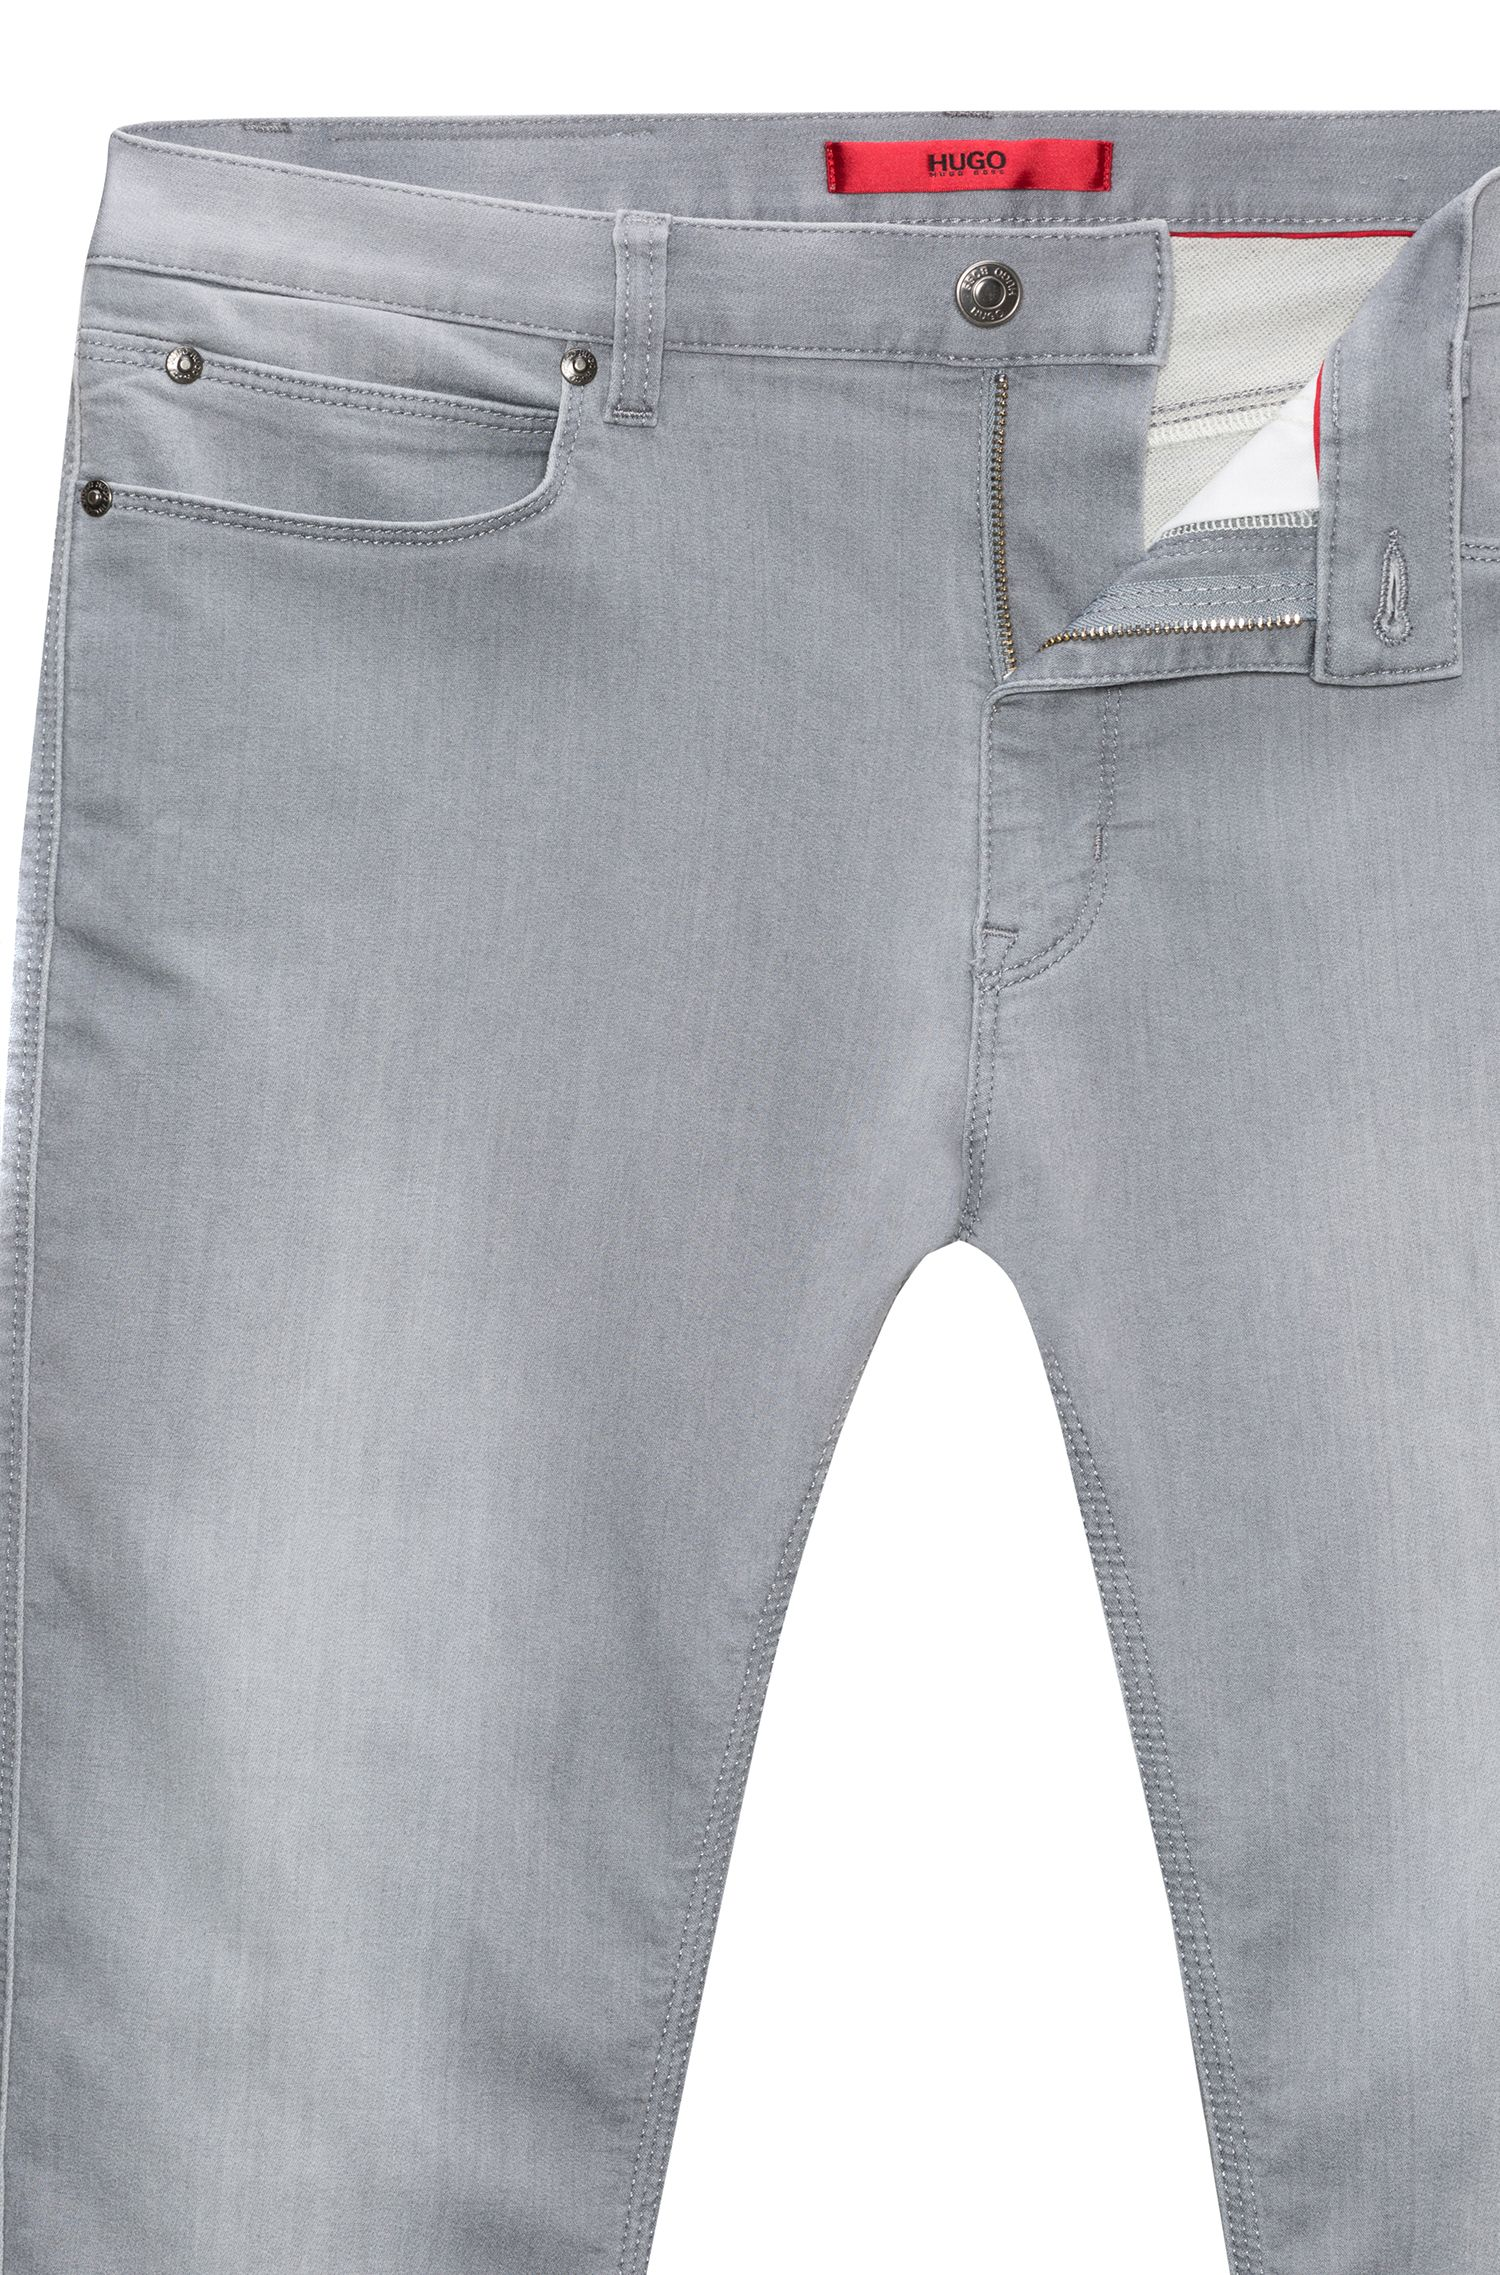 Skinny-fit stretch jeans with a low rise